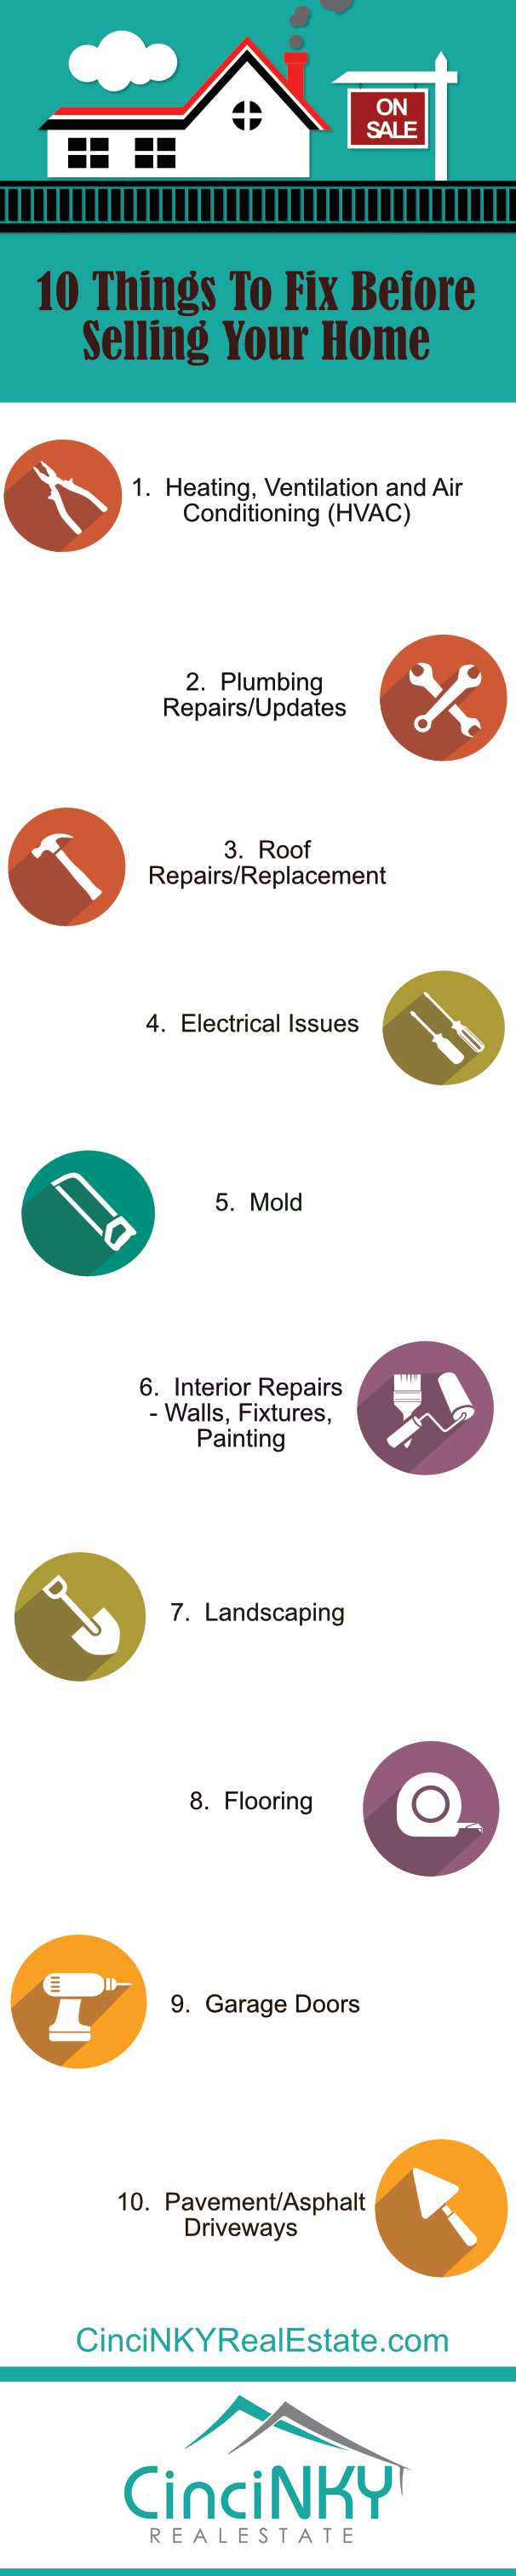 10 Things To Fix Before Selling Your Home Infographic